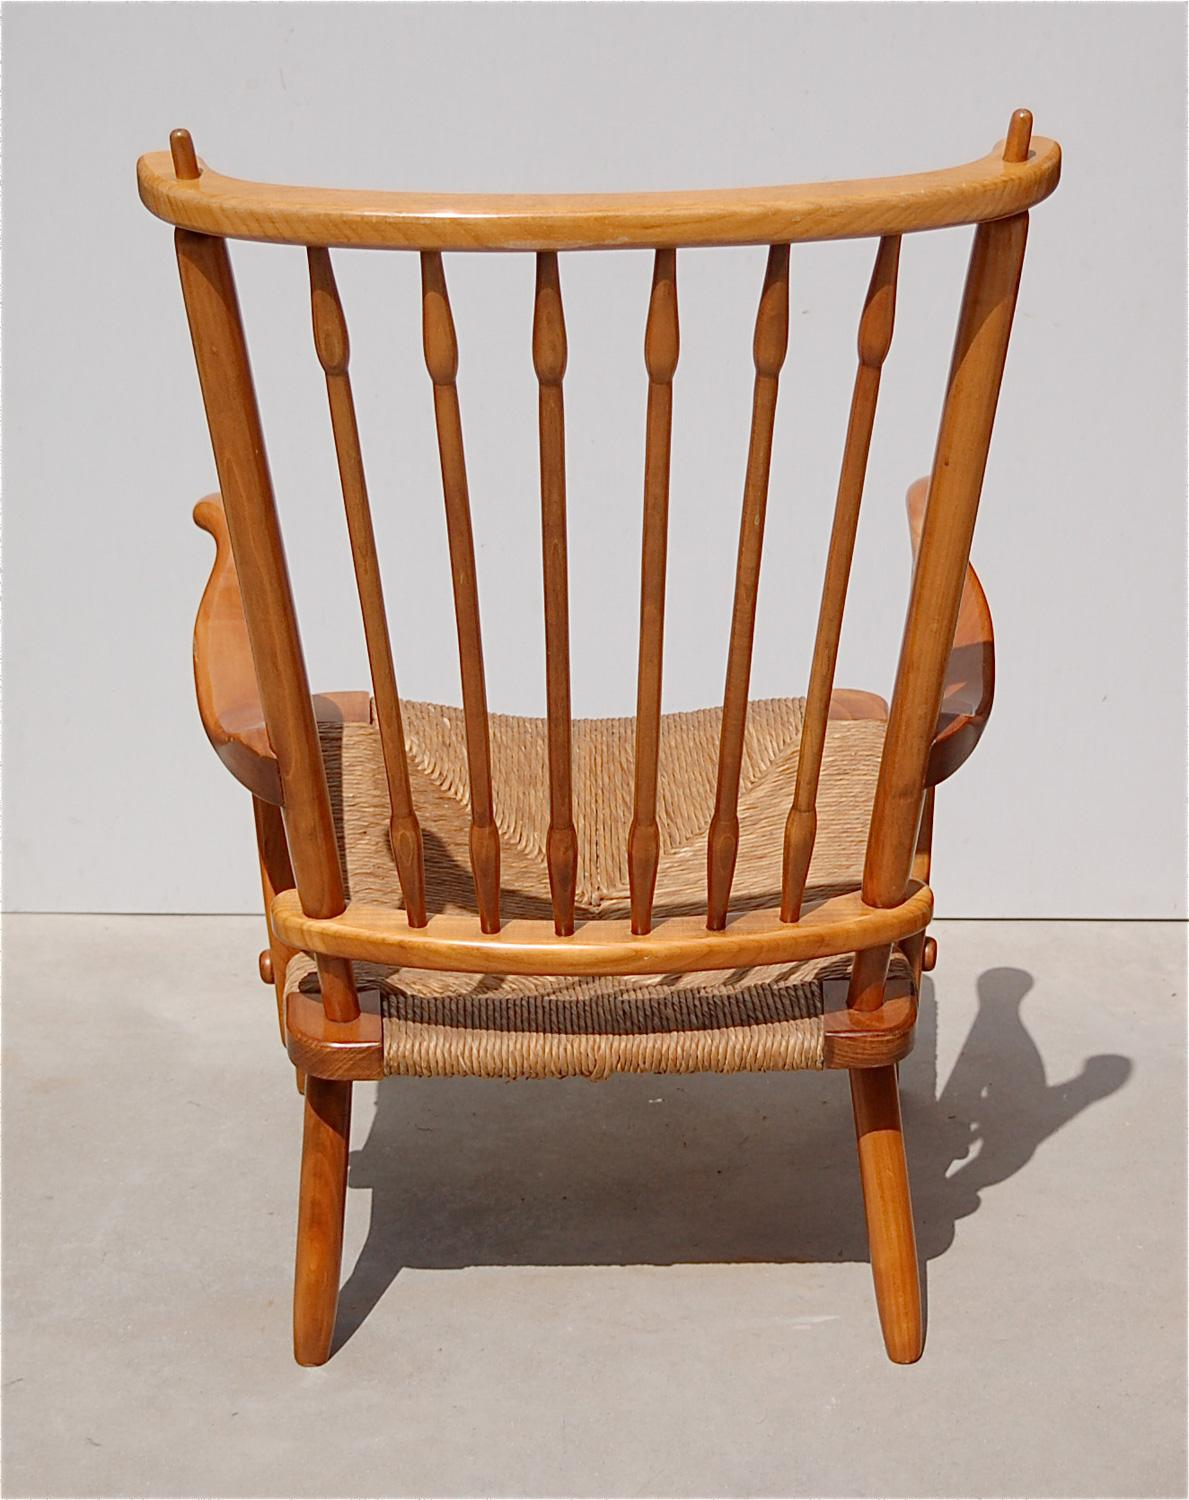 Attirant Spindle Armchair With Rush Seat, 1950s, Netherlands